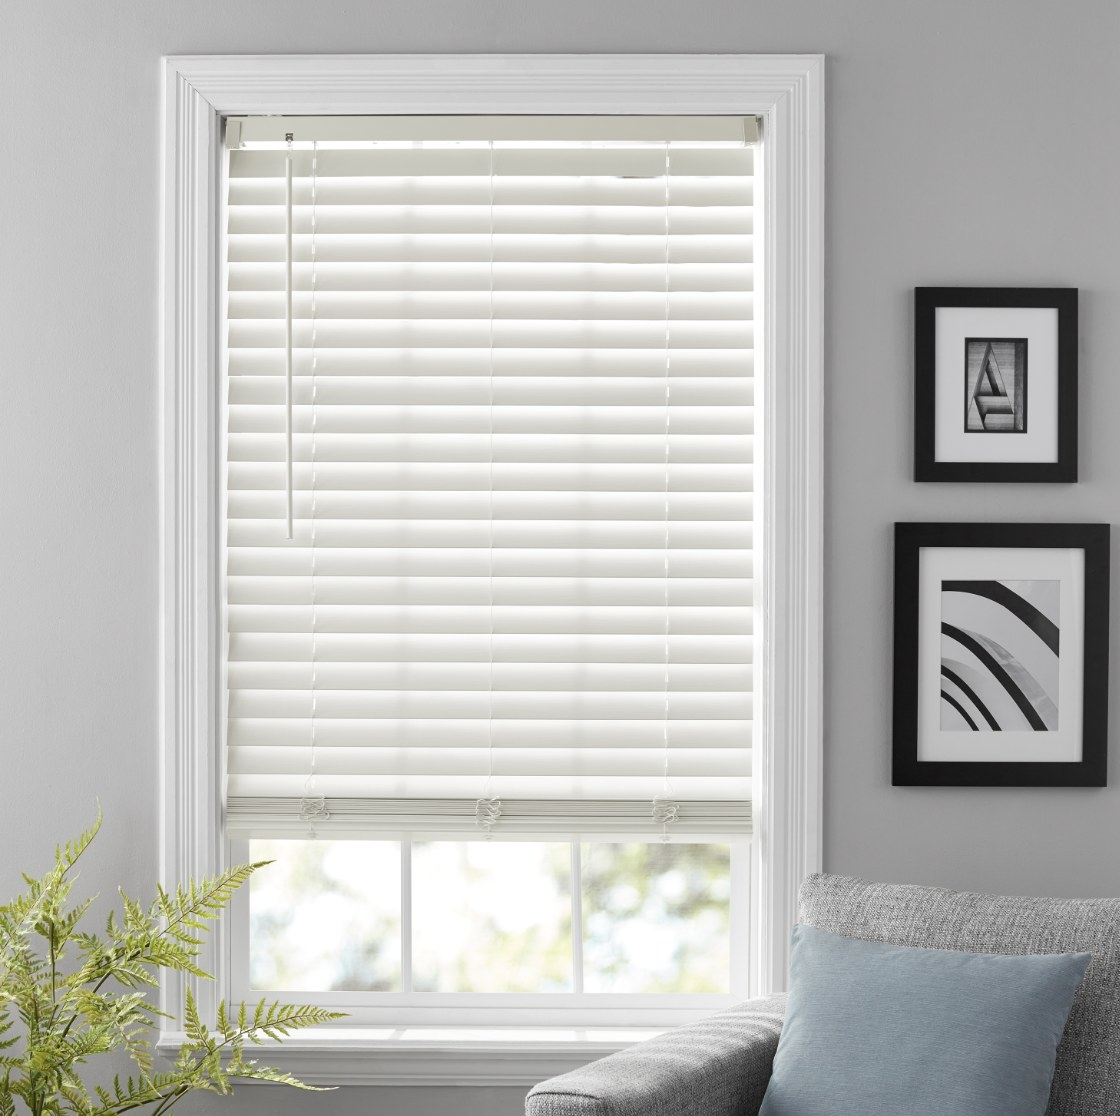 The white blinds are covering a window 3/4 of the way in a sunlit room